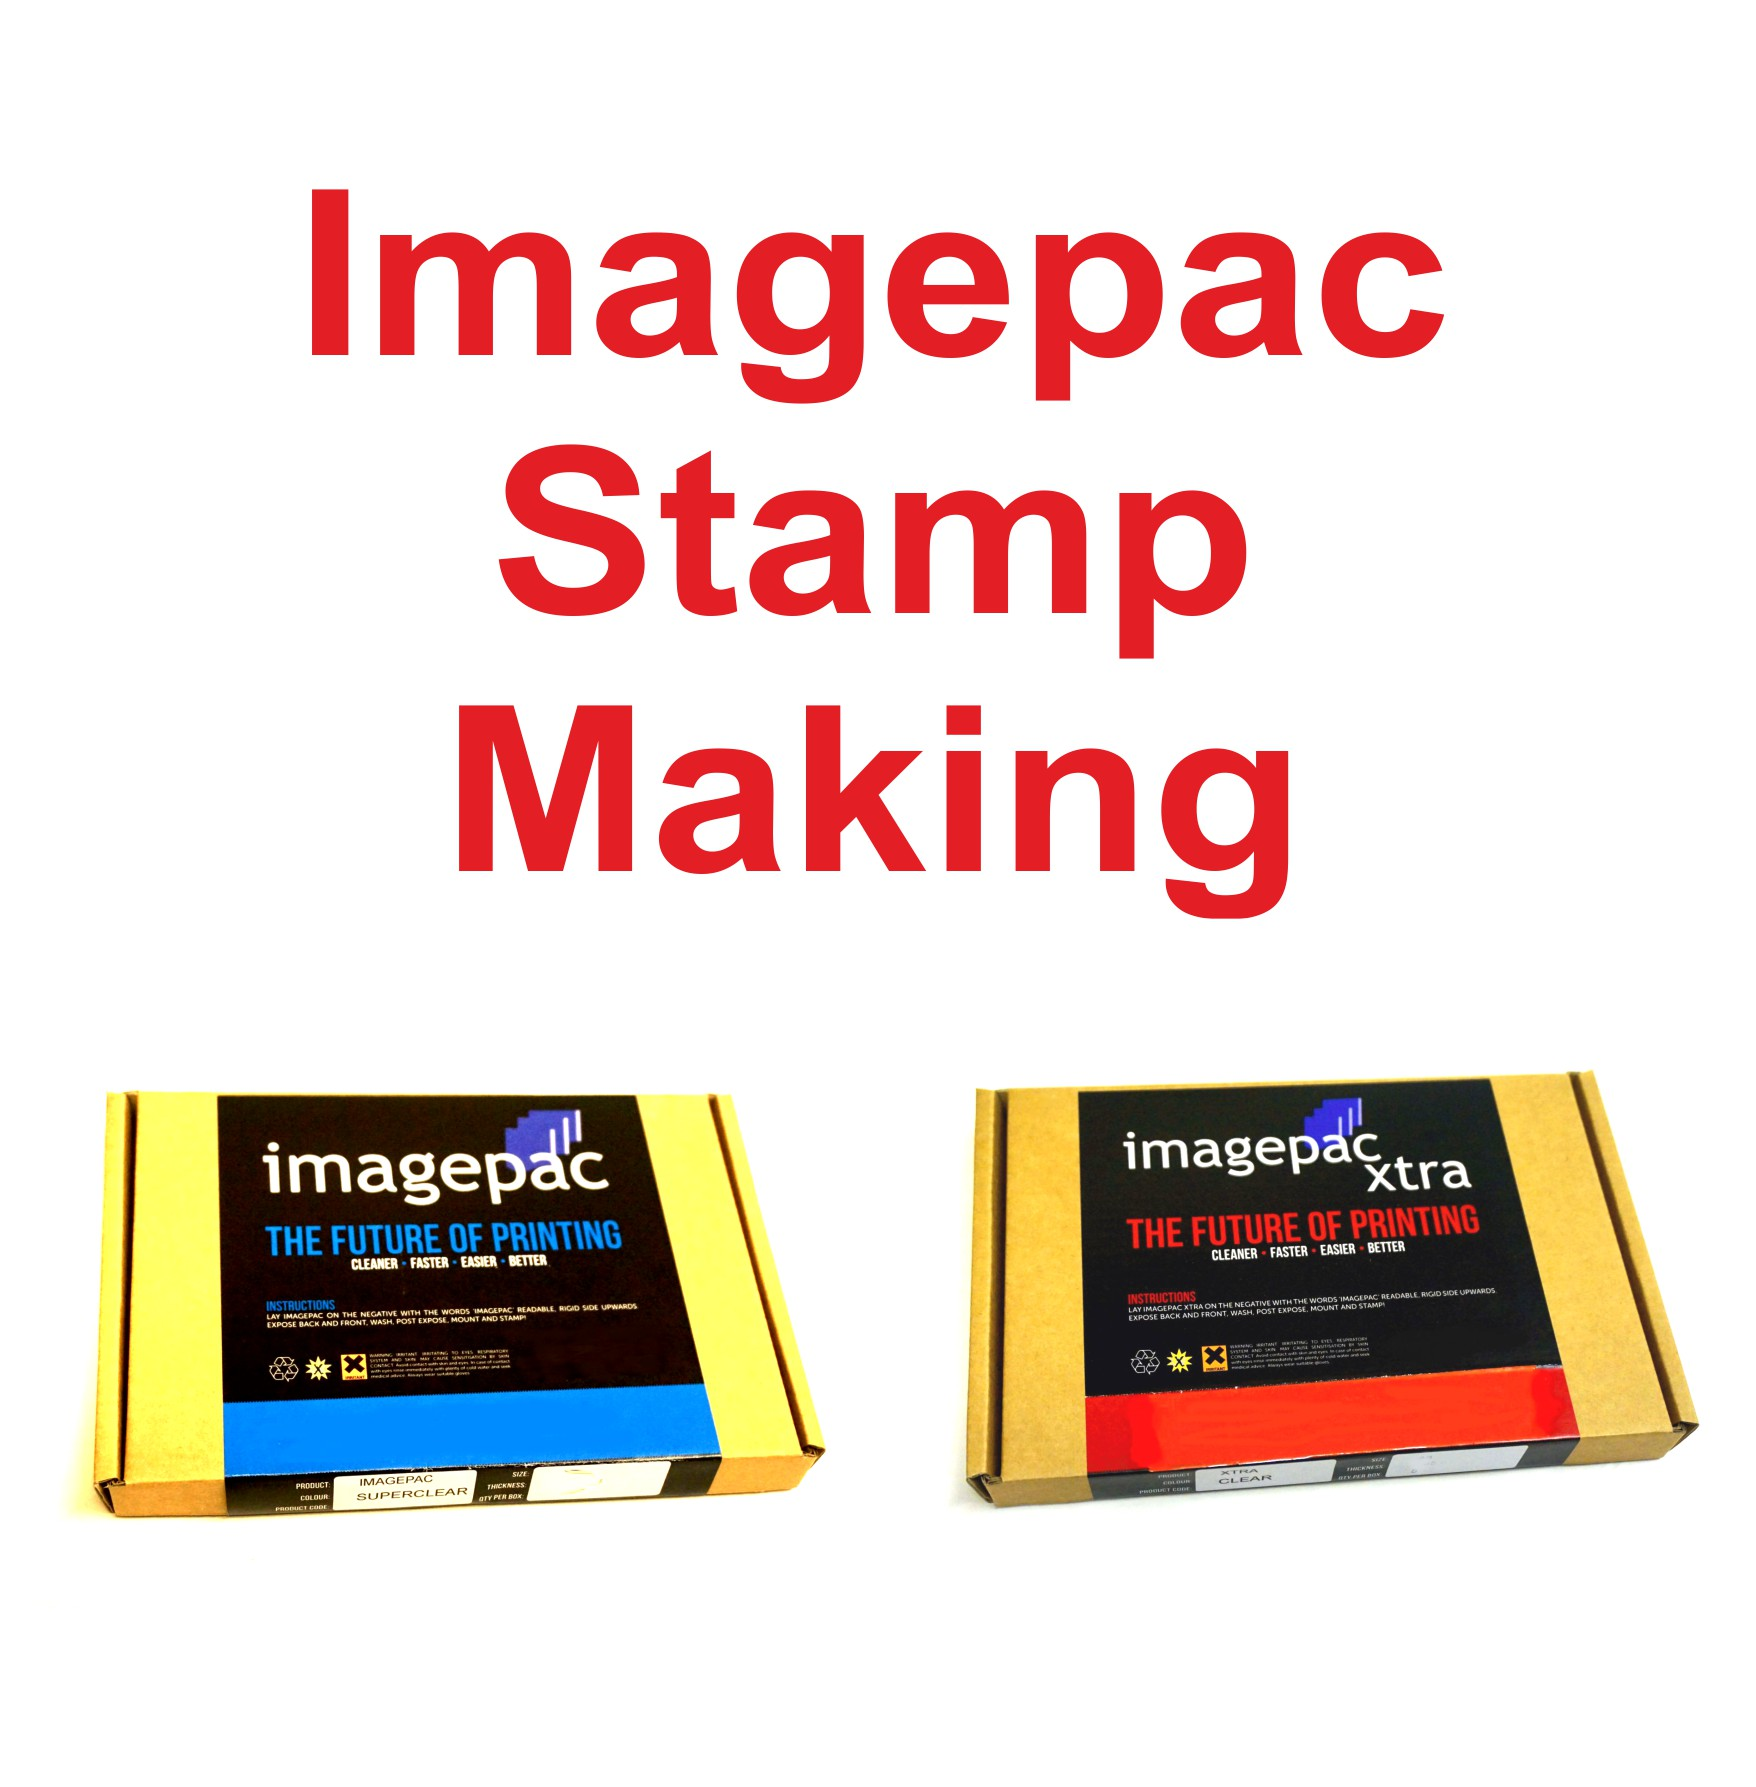 Imagepac Stamp Making